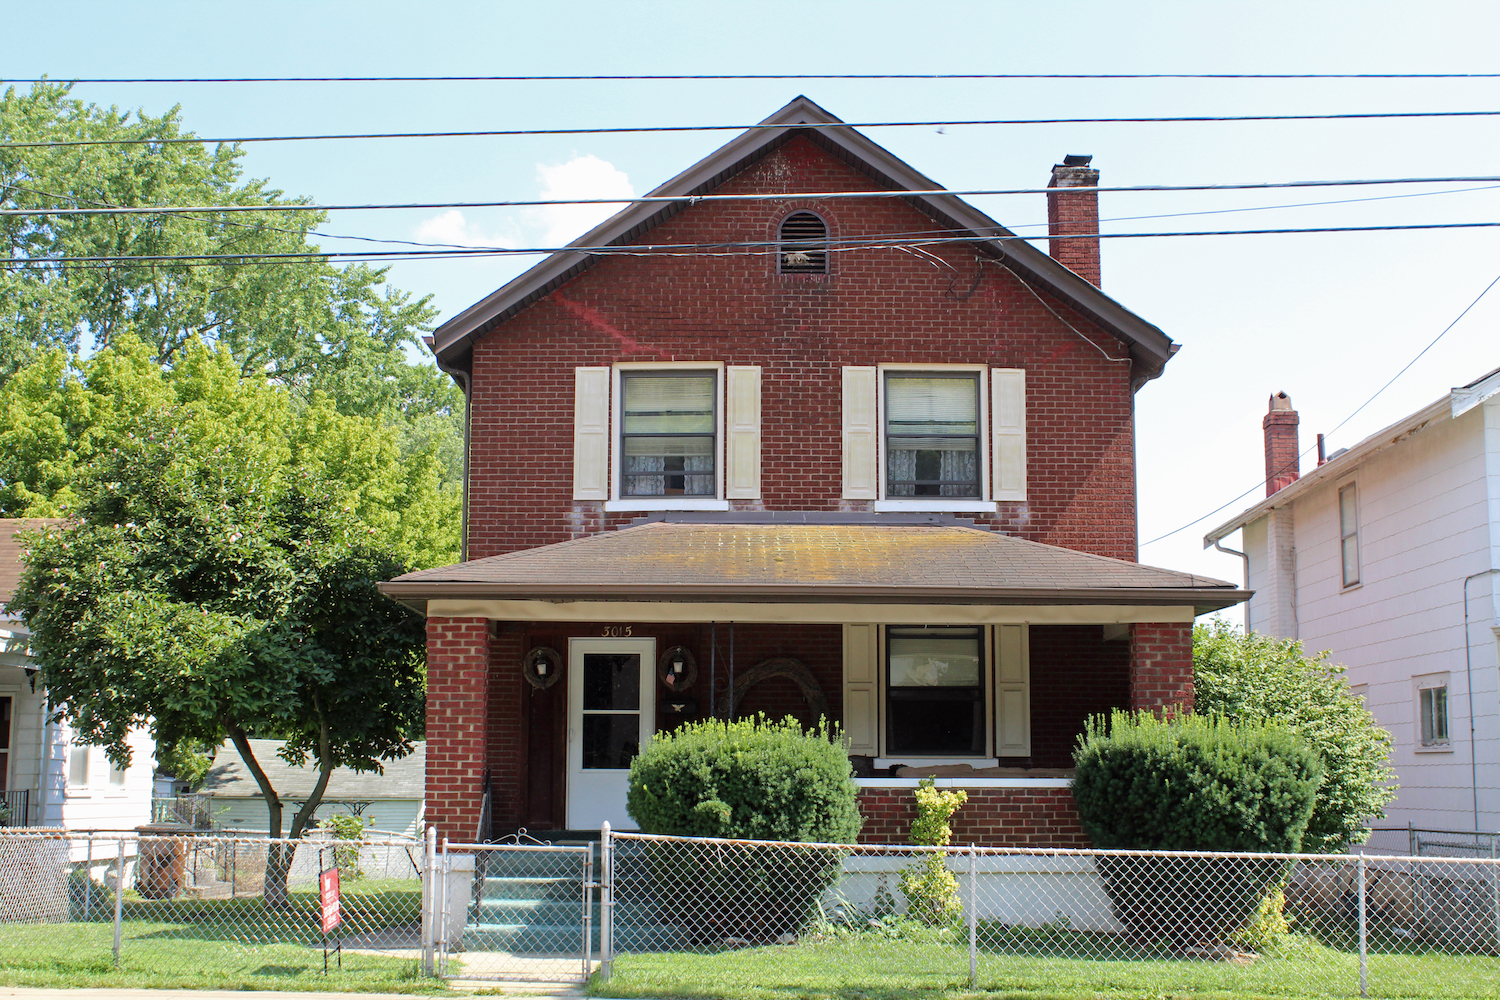 easily sell your house in florence ky - we buy nky houses